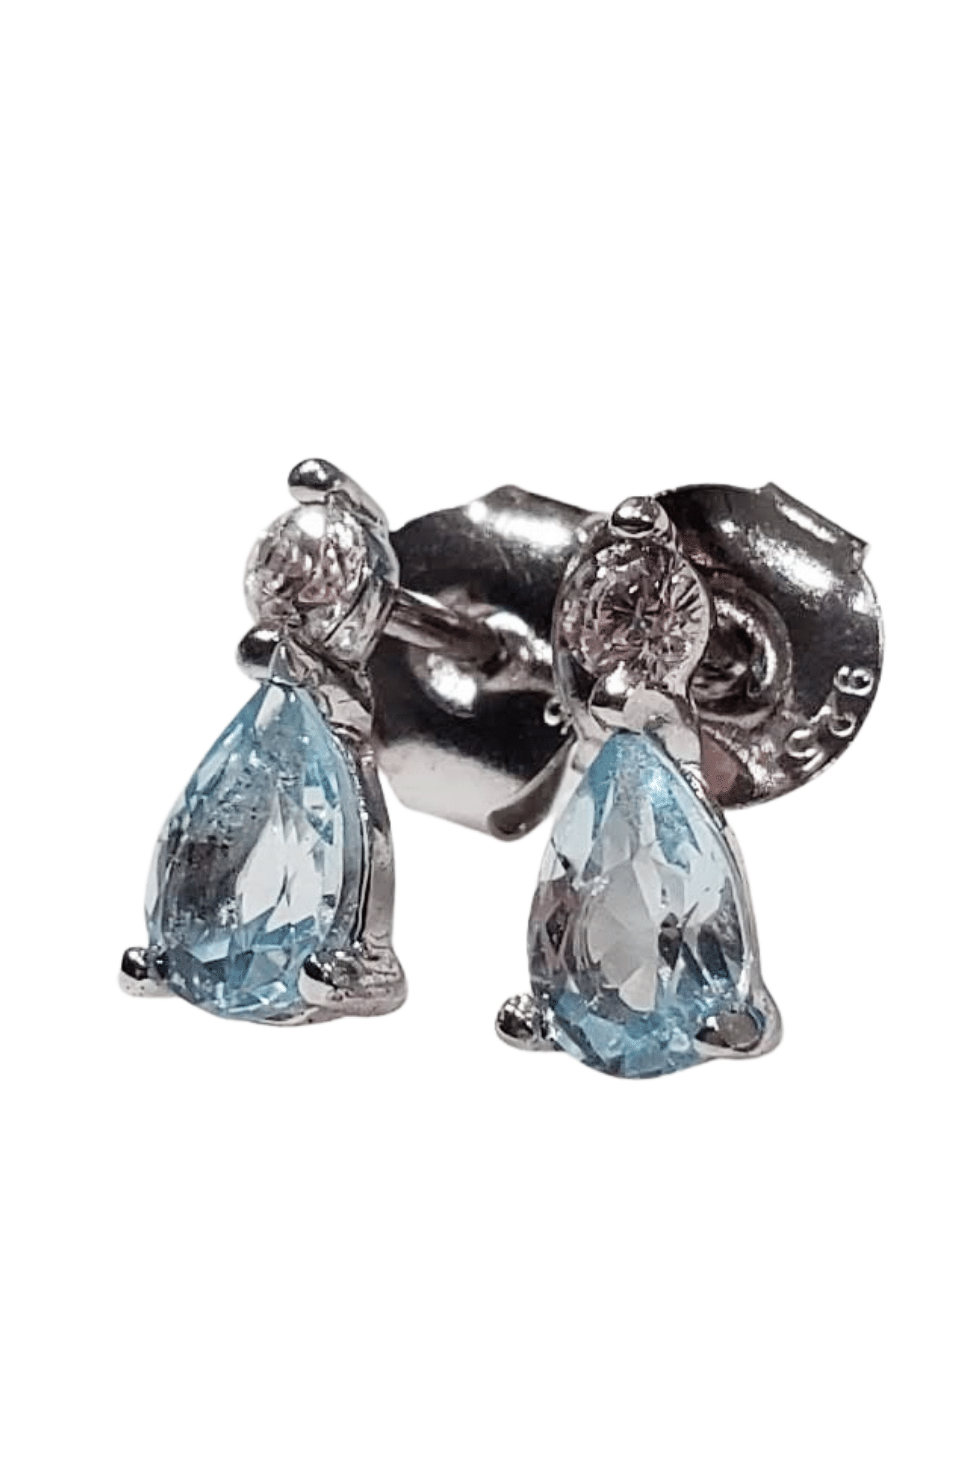 teardrop stud earrings made of 925 sterling silver and blue topaz